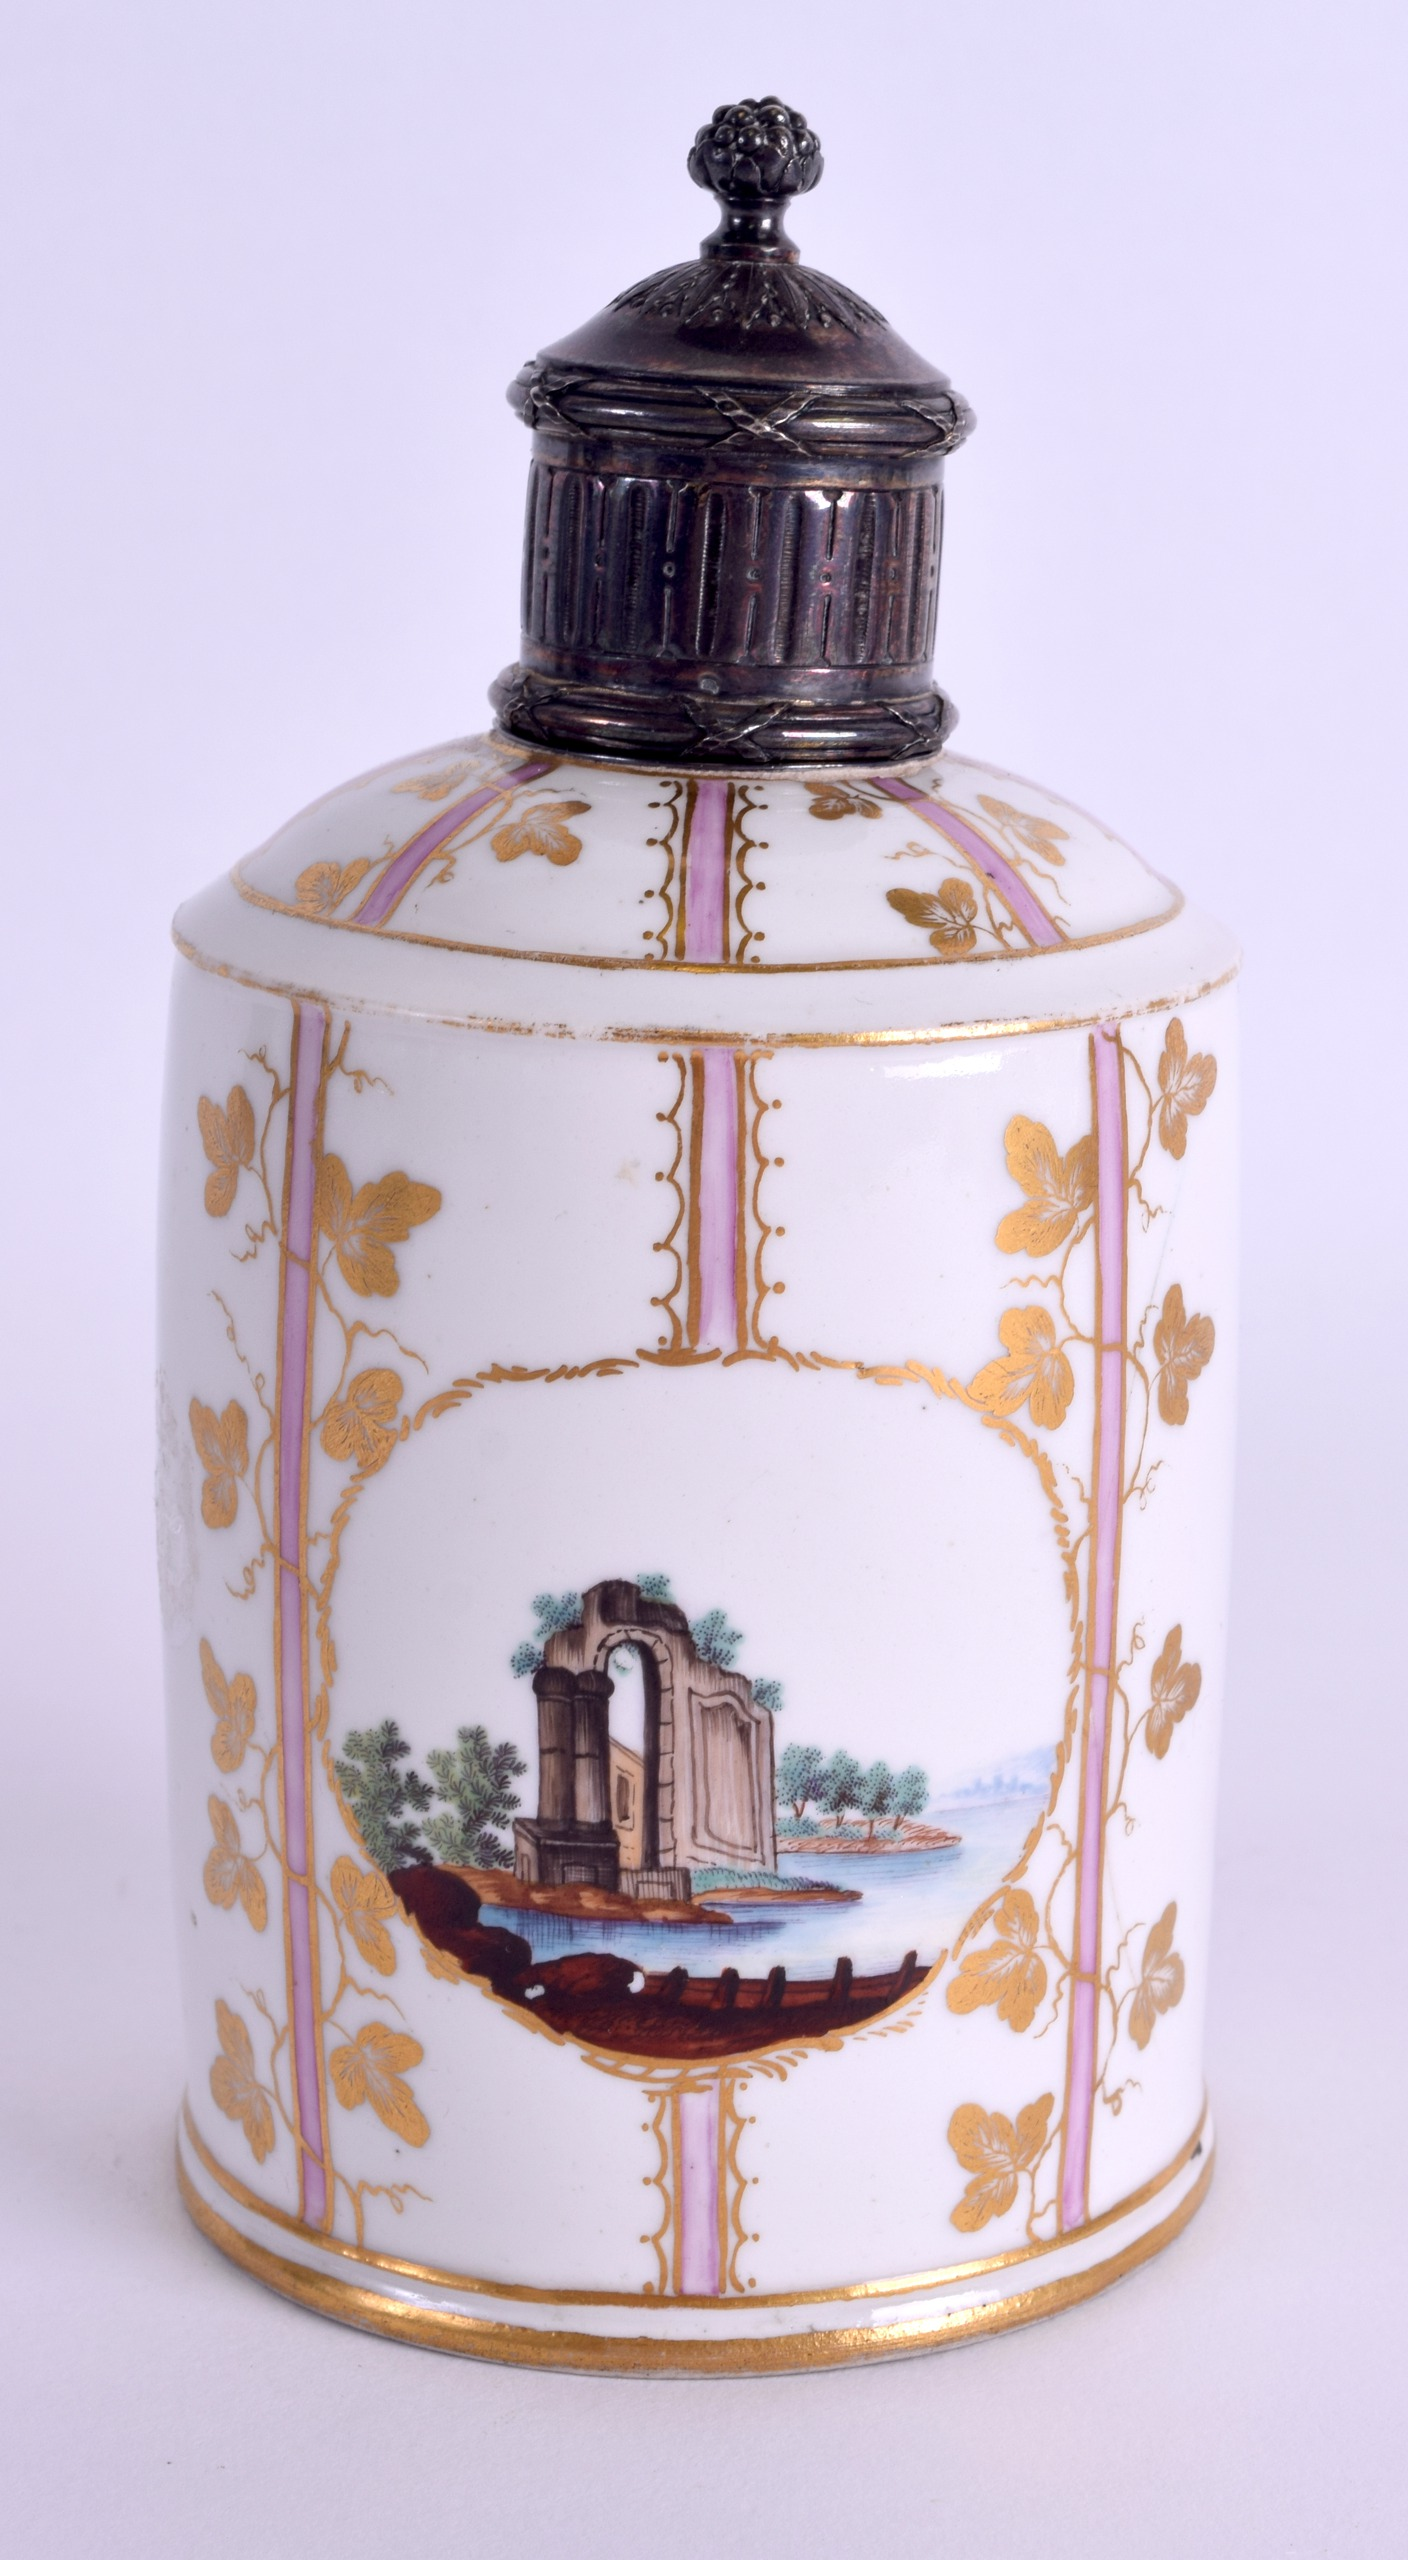 Lot 93 - AN 18TH CENTURY GERMAN PORCELAIN TEA CANISTER with silver cover, painted with towns in the Meissen